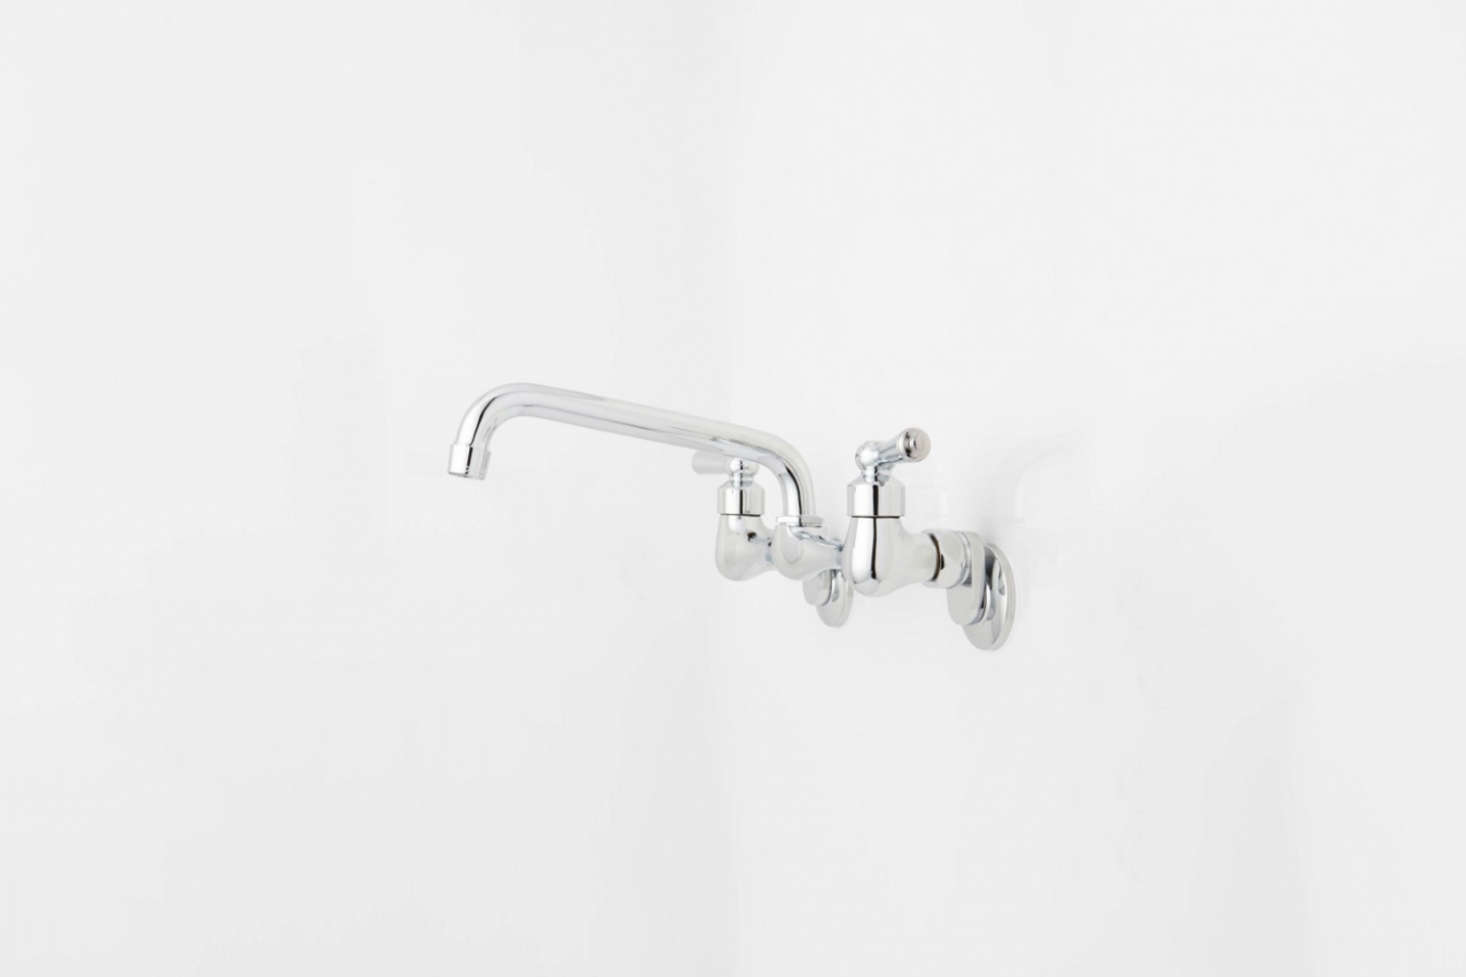 At Signature Hardware the Wall-Mount Faucet Swing Sprout with an eight-inch swing spout and lever handles is $129.95.